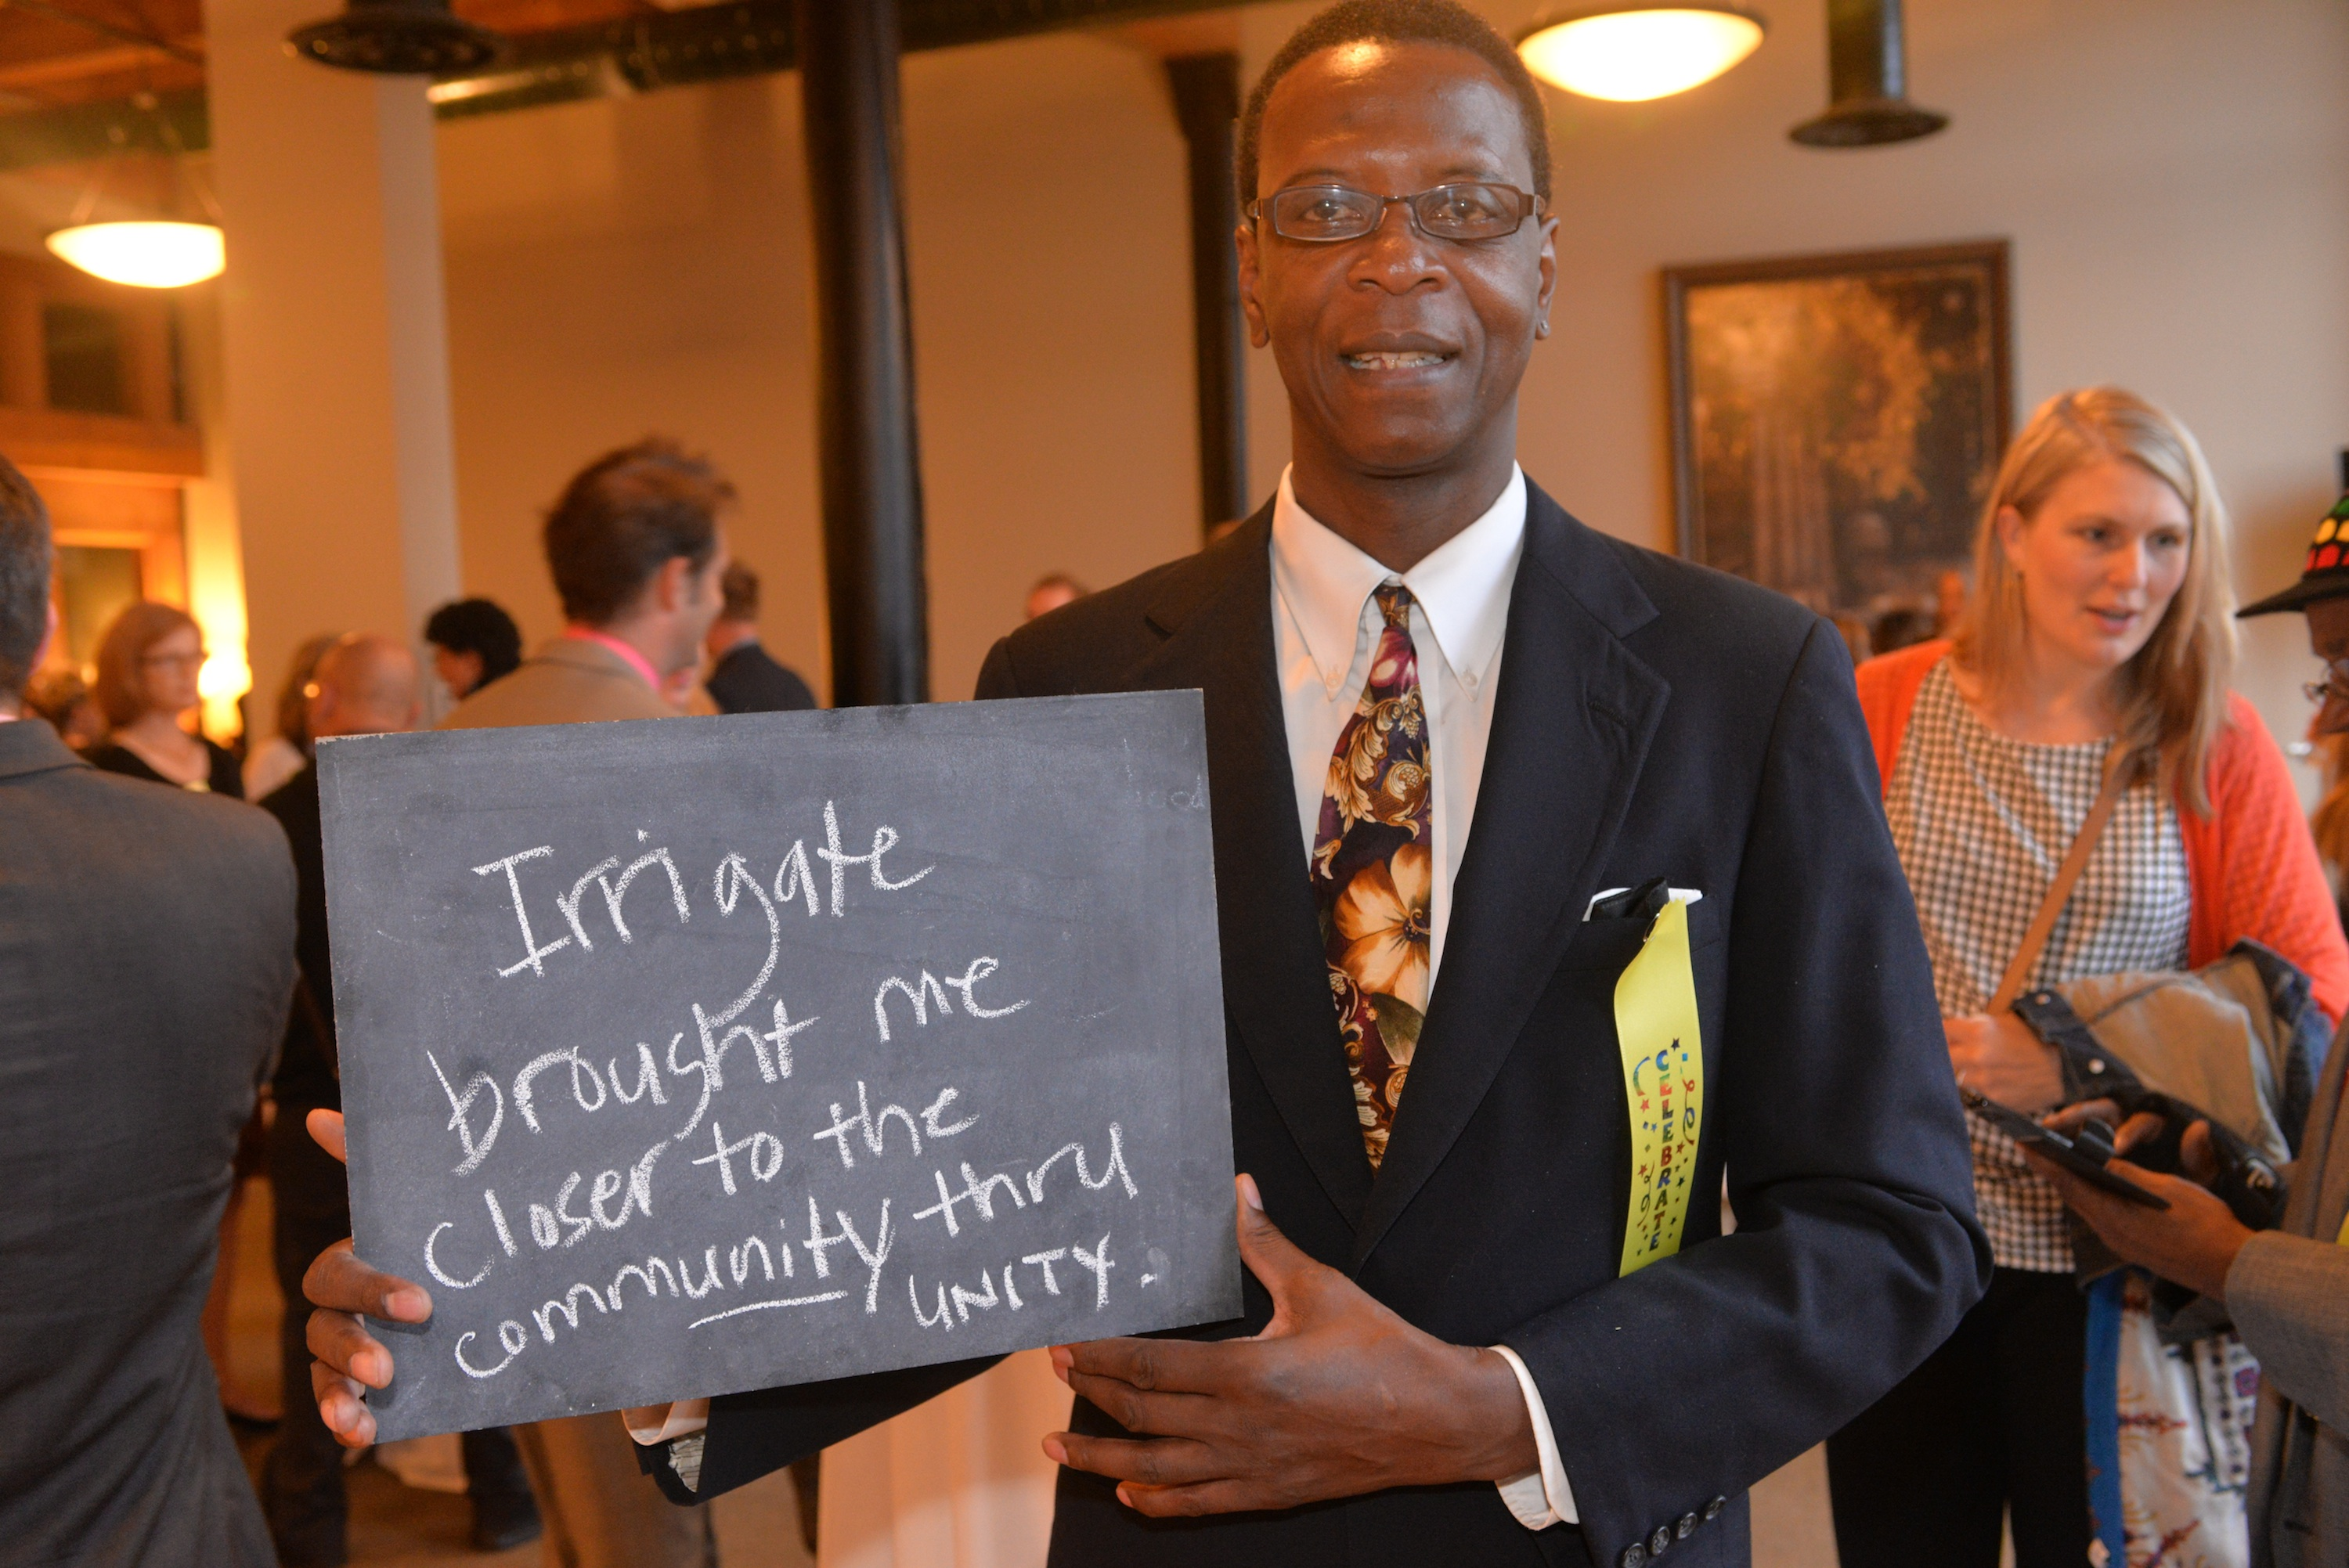 Celebrations at the closing of Irrigate, a 3-year artist-led creative placemaking partnership between Springboard for the Arts, the City of St. Paul, TC-LISC, and Artplace.